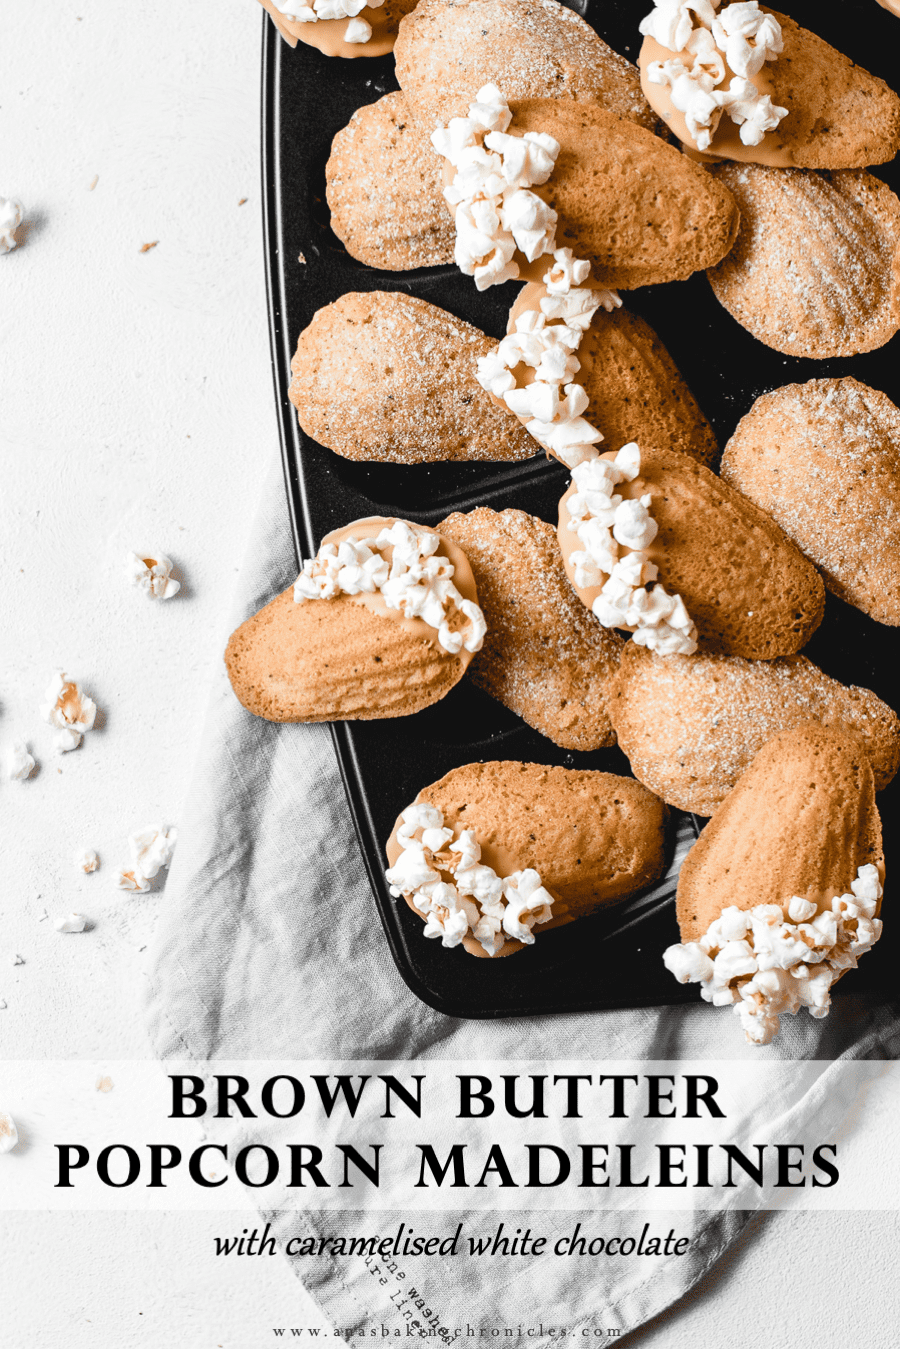 Soft and delicious brown butter madeleines, dipped in gorgeous caramelised white chocolate and sprinkled with salted popcorn. Guaranteed to sweep you off of your feet! ⎪www.anasbakingchronicles.com